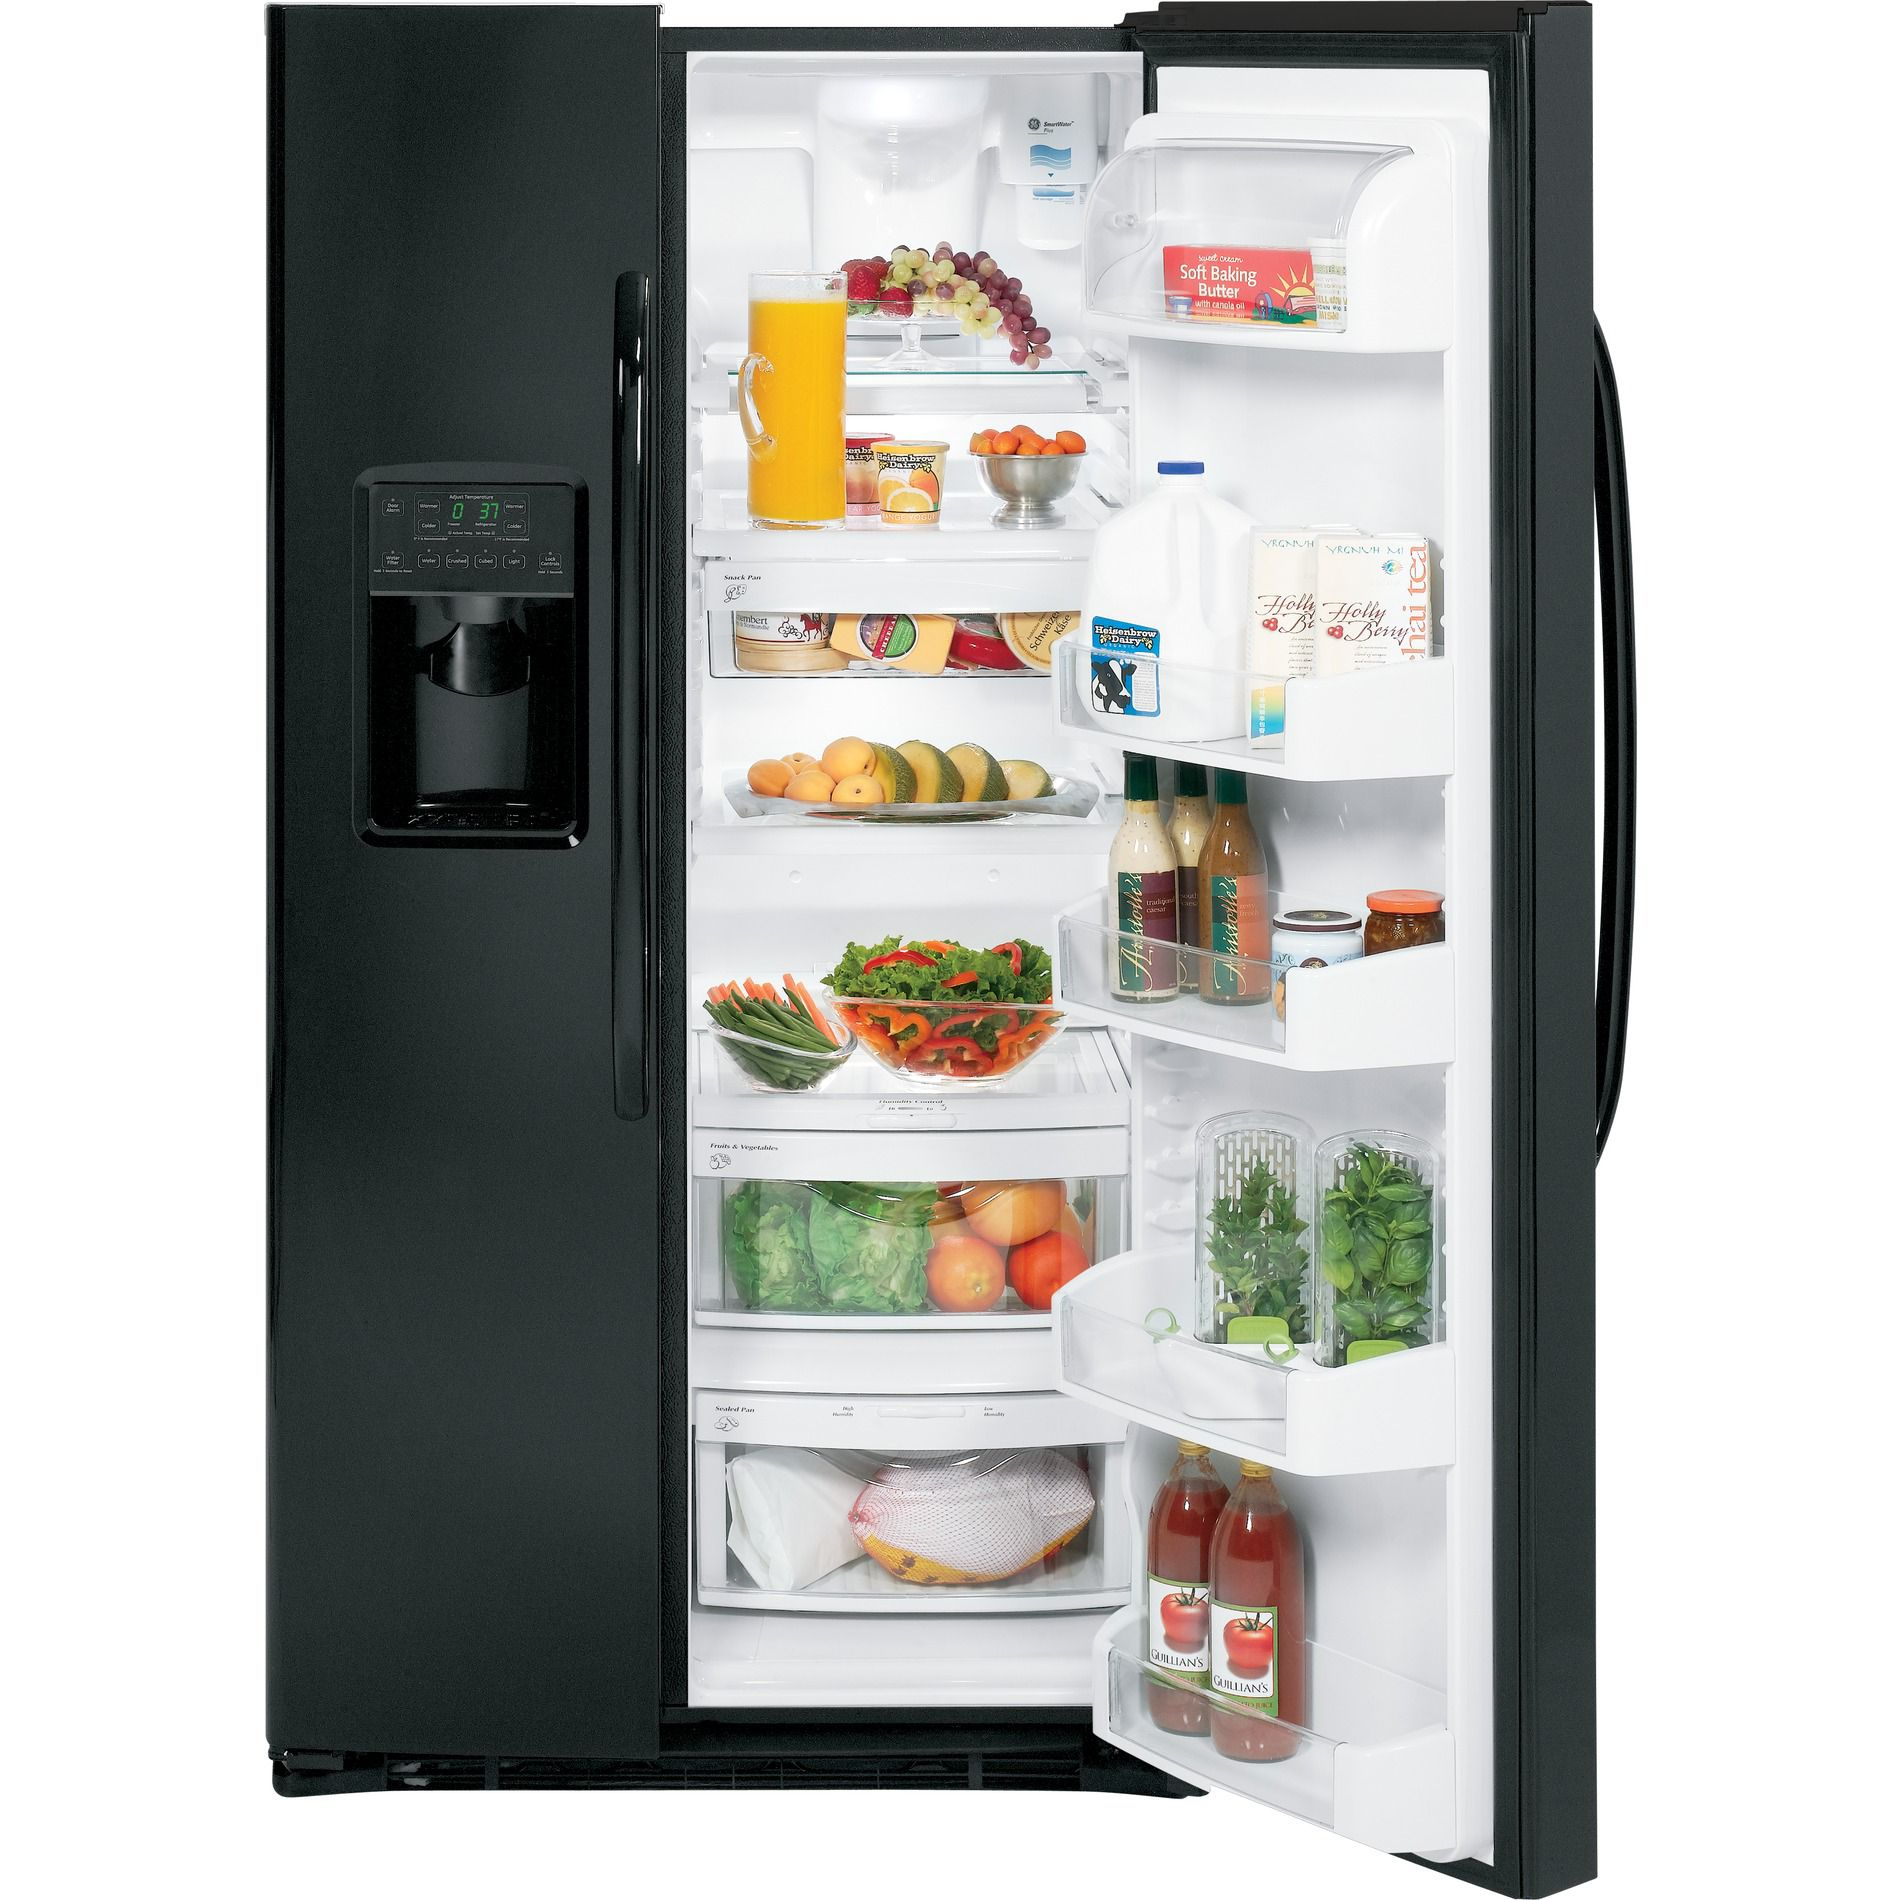 GE 25.9 cu. ft. Side-By-Side Refrigerator - Black